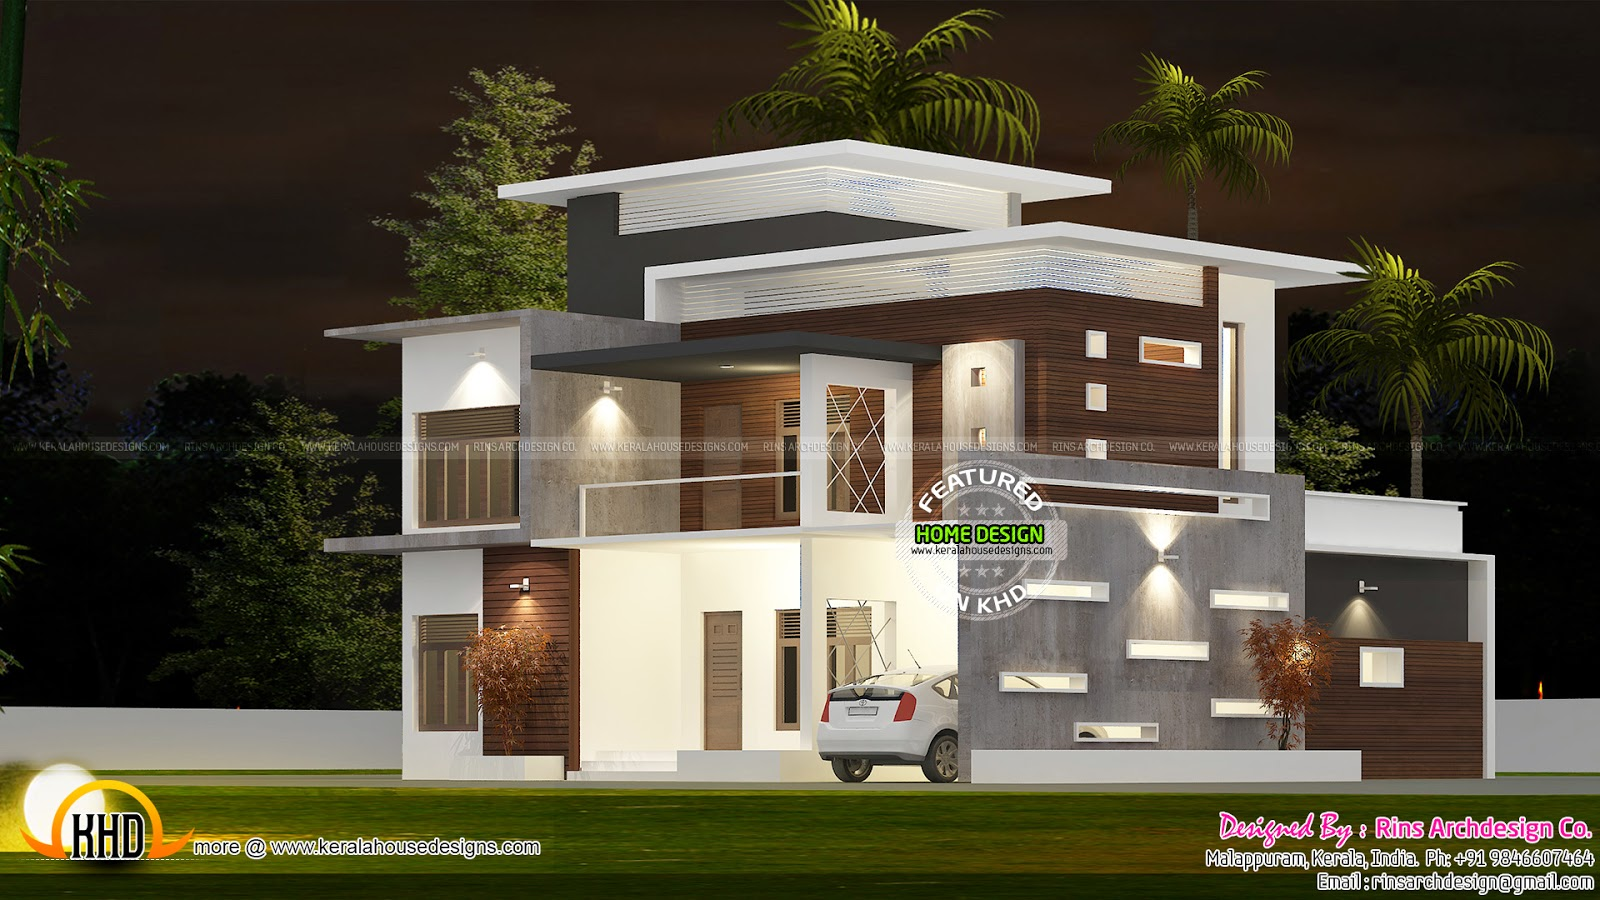 289 sq yd contemporary flat roof kerala home design and floor plans